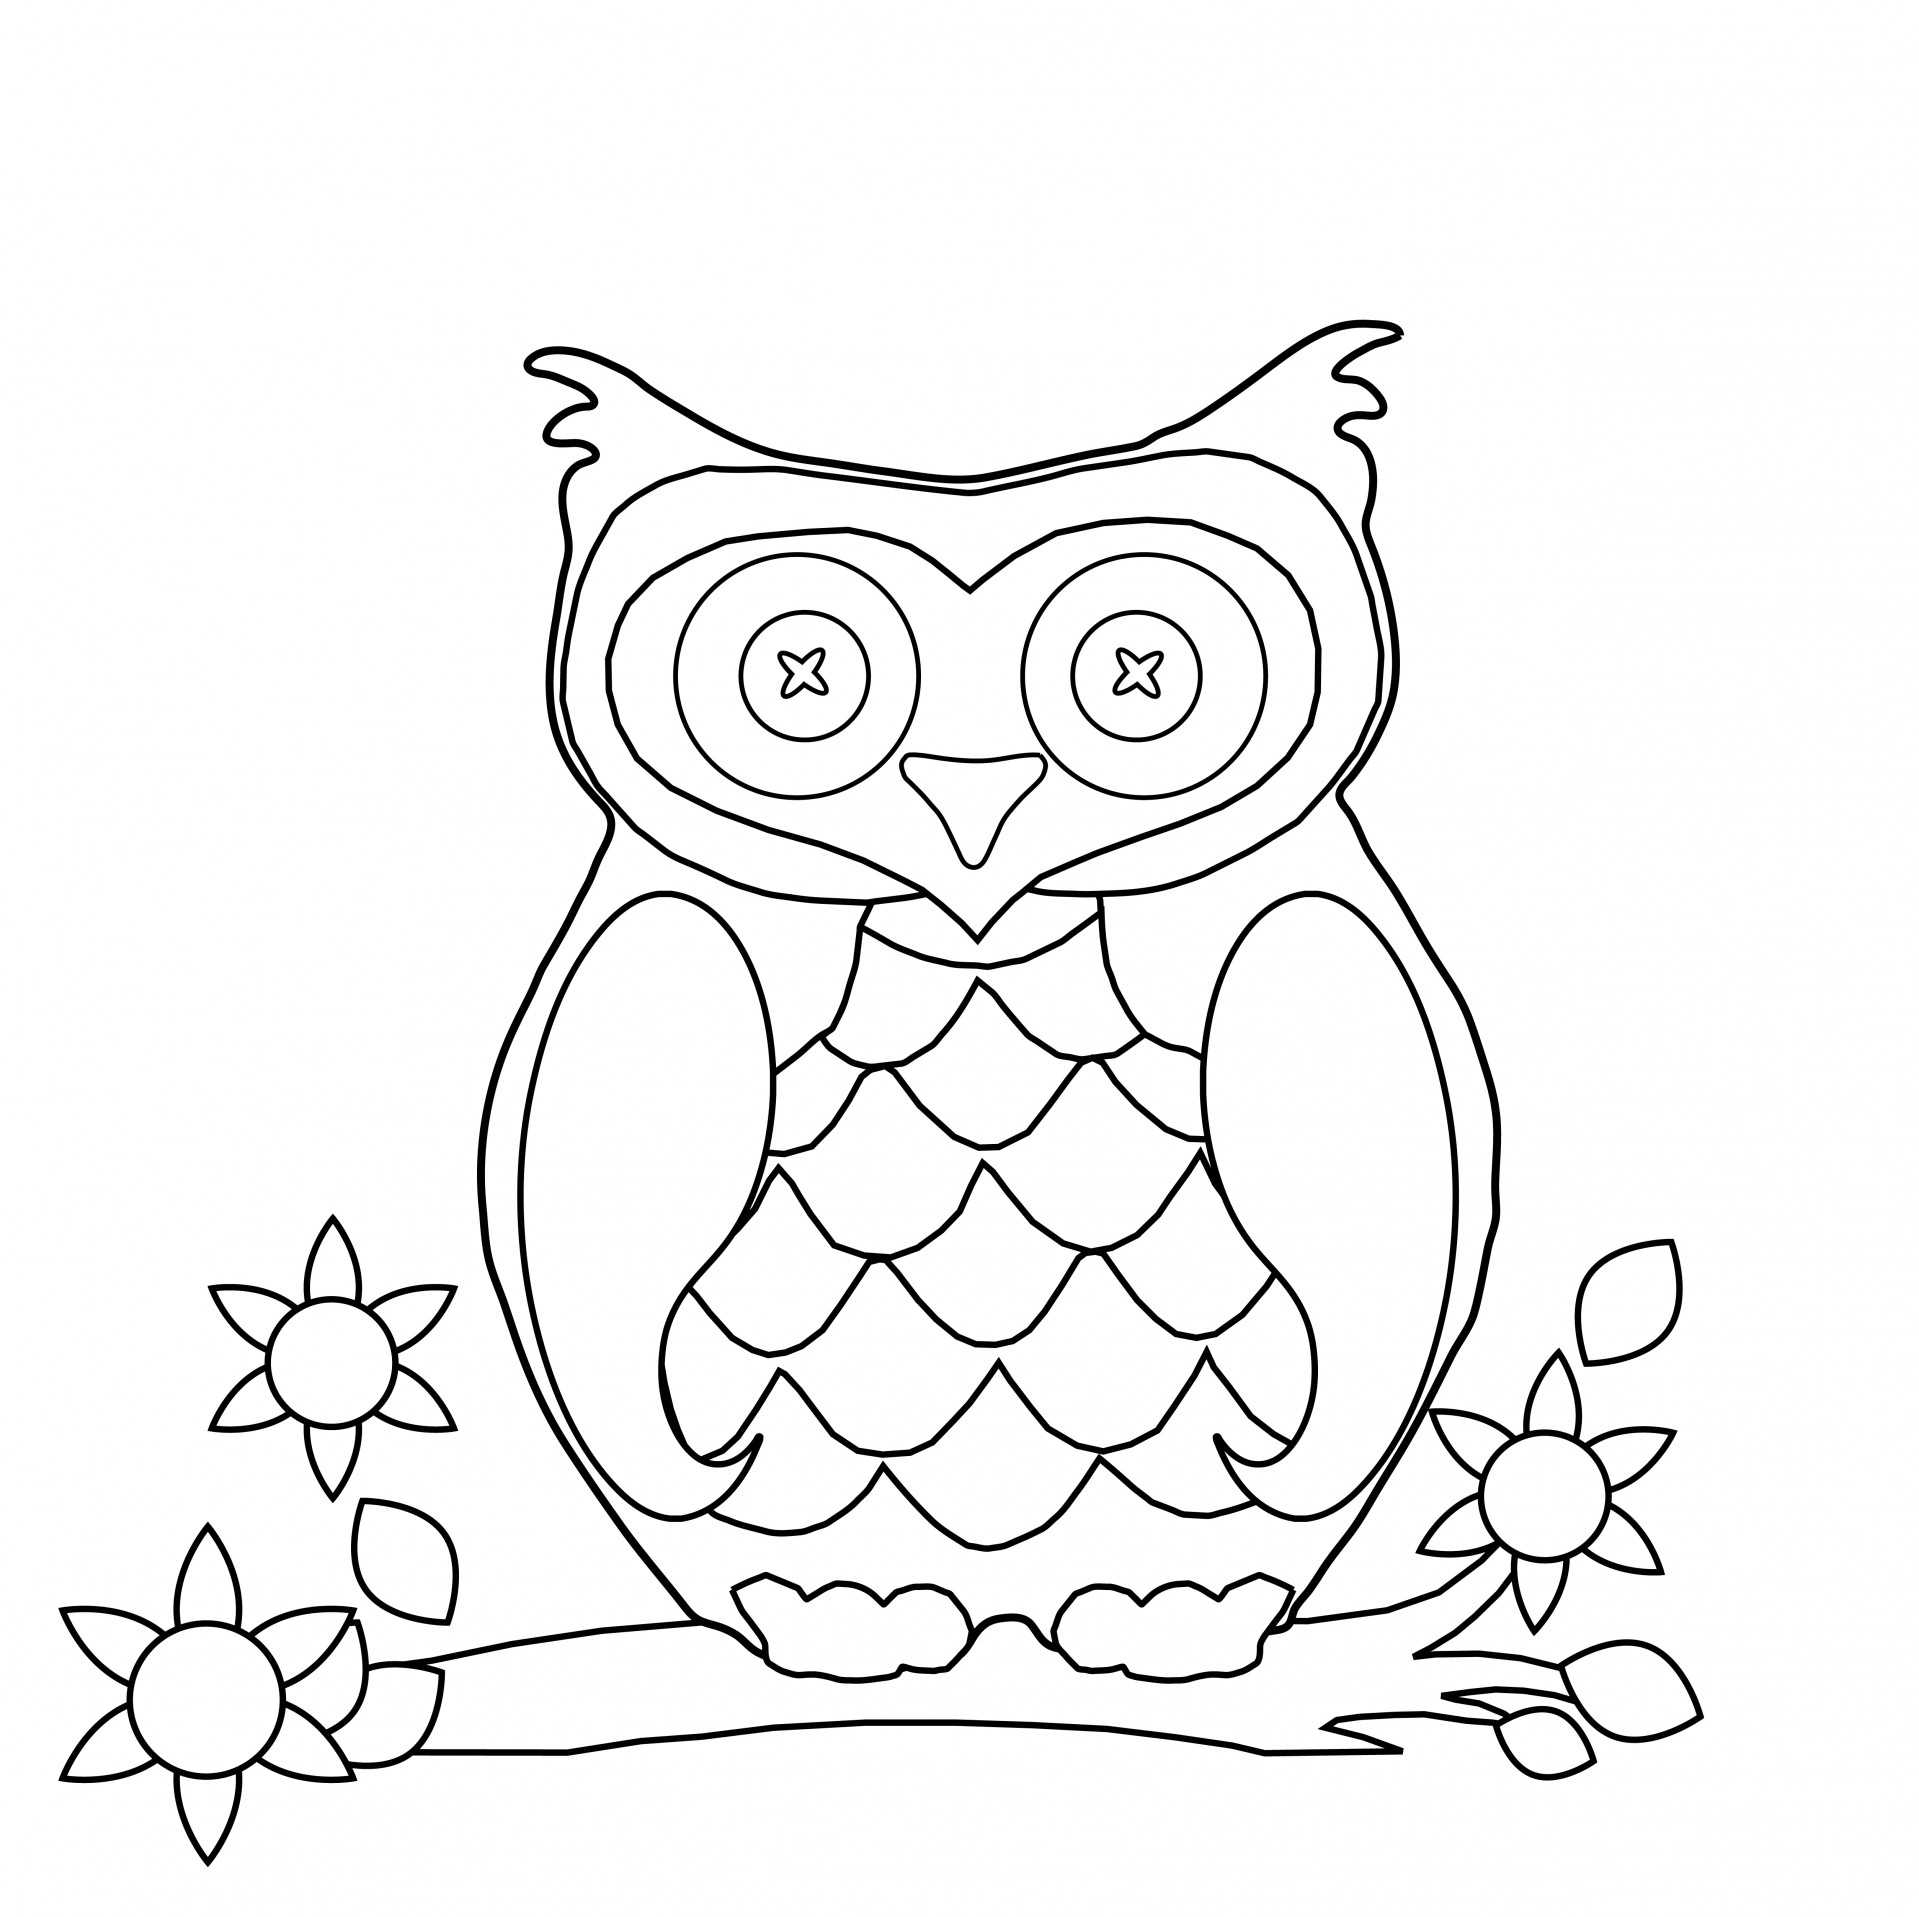 coloring kids picture pony coloring pages best coloring pages for kids picture kids coloring